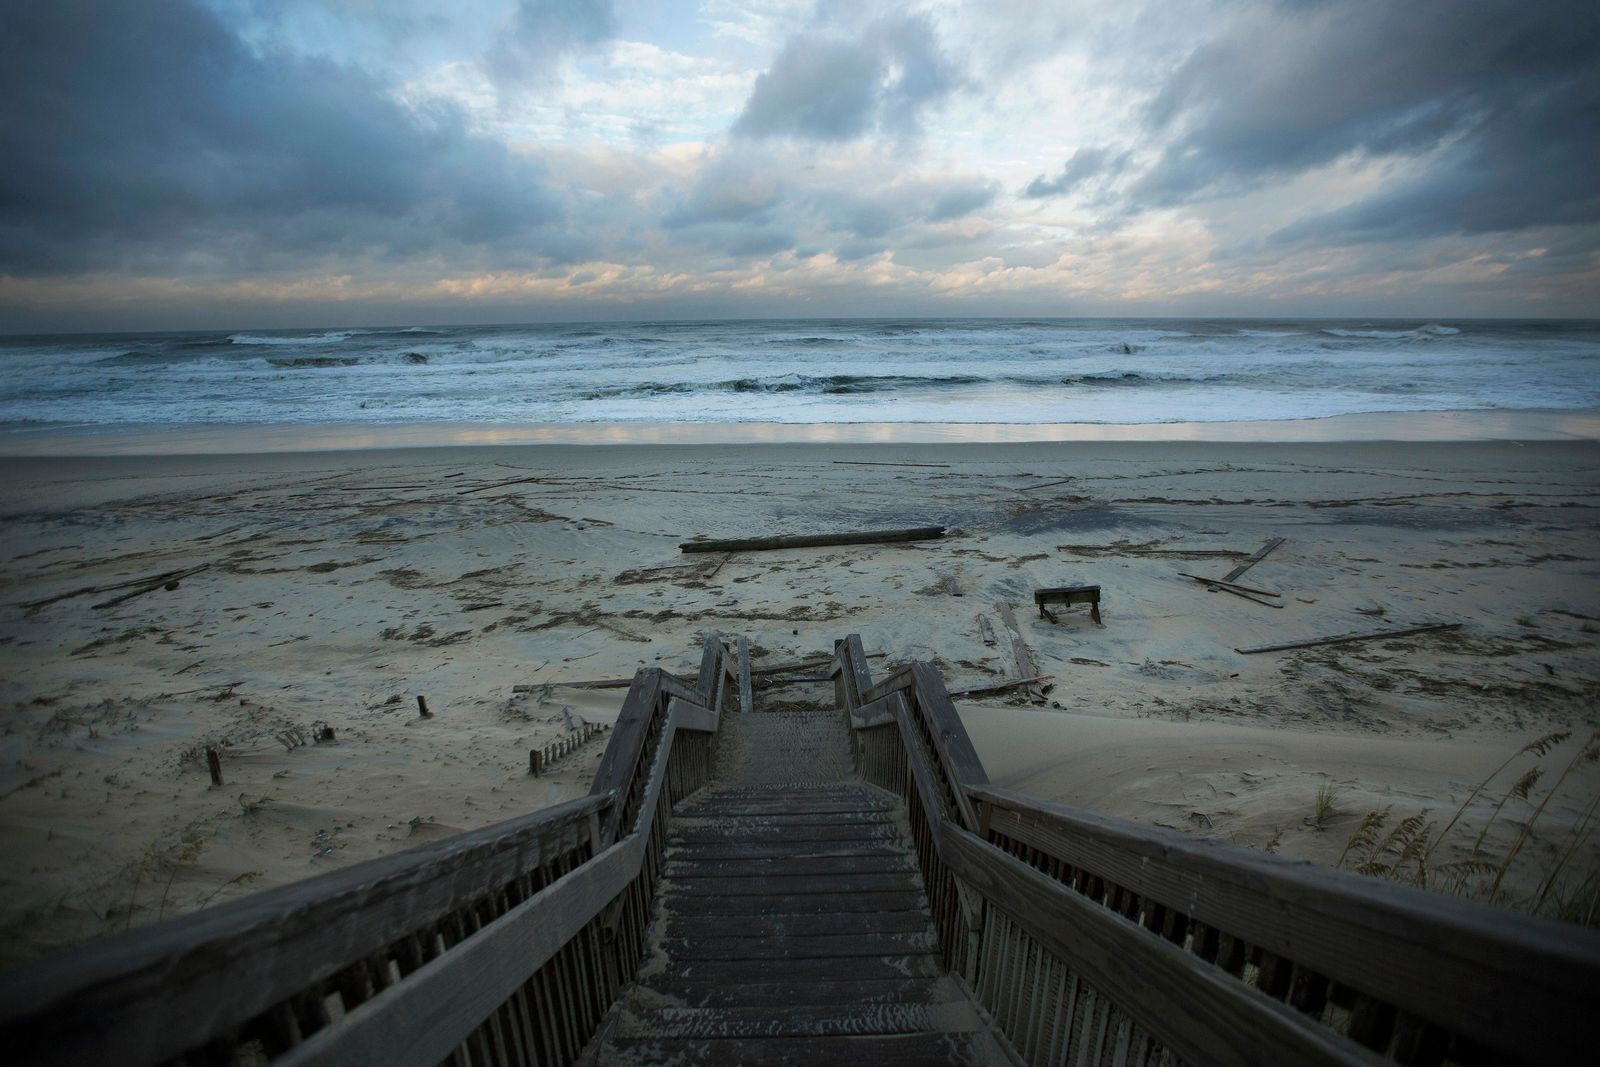 Wood debris is left scattered across the Nags Head beach in the Outer Banks, N.C., as the sunsets, Friday, Sept 6, 2019. Hurricane Dorian continues to churn off the North Carolina coast, but it's heading further into the Atlantic Ocean, prompting forecasters to lift hurricane and tropical storm warnings south of the Virginia-North Carolina border. (L. Todd Spencer/The Virginian-Pilot via AP)